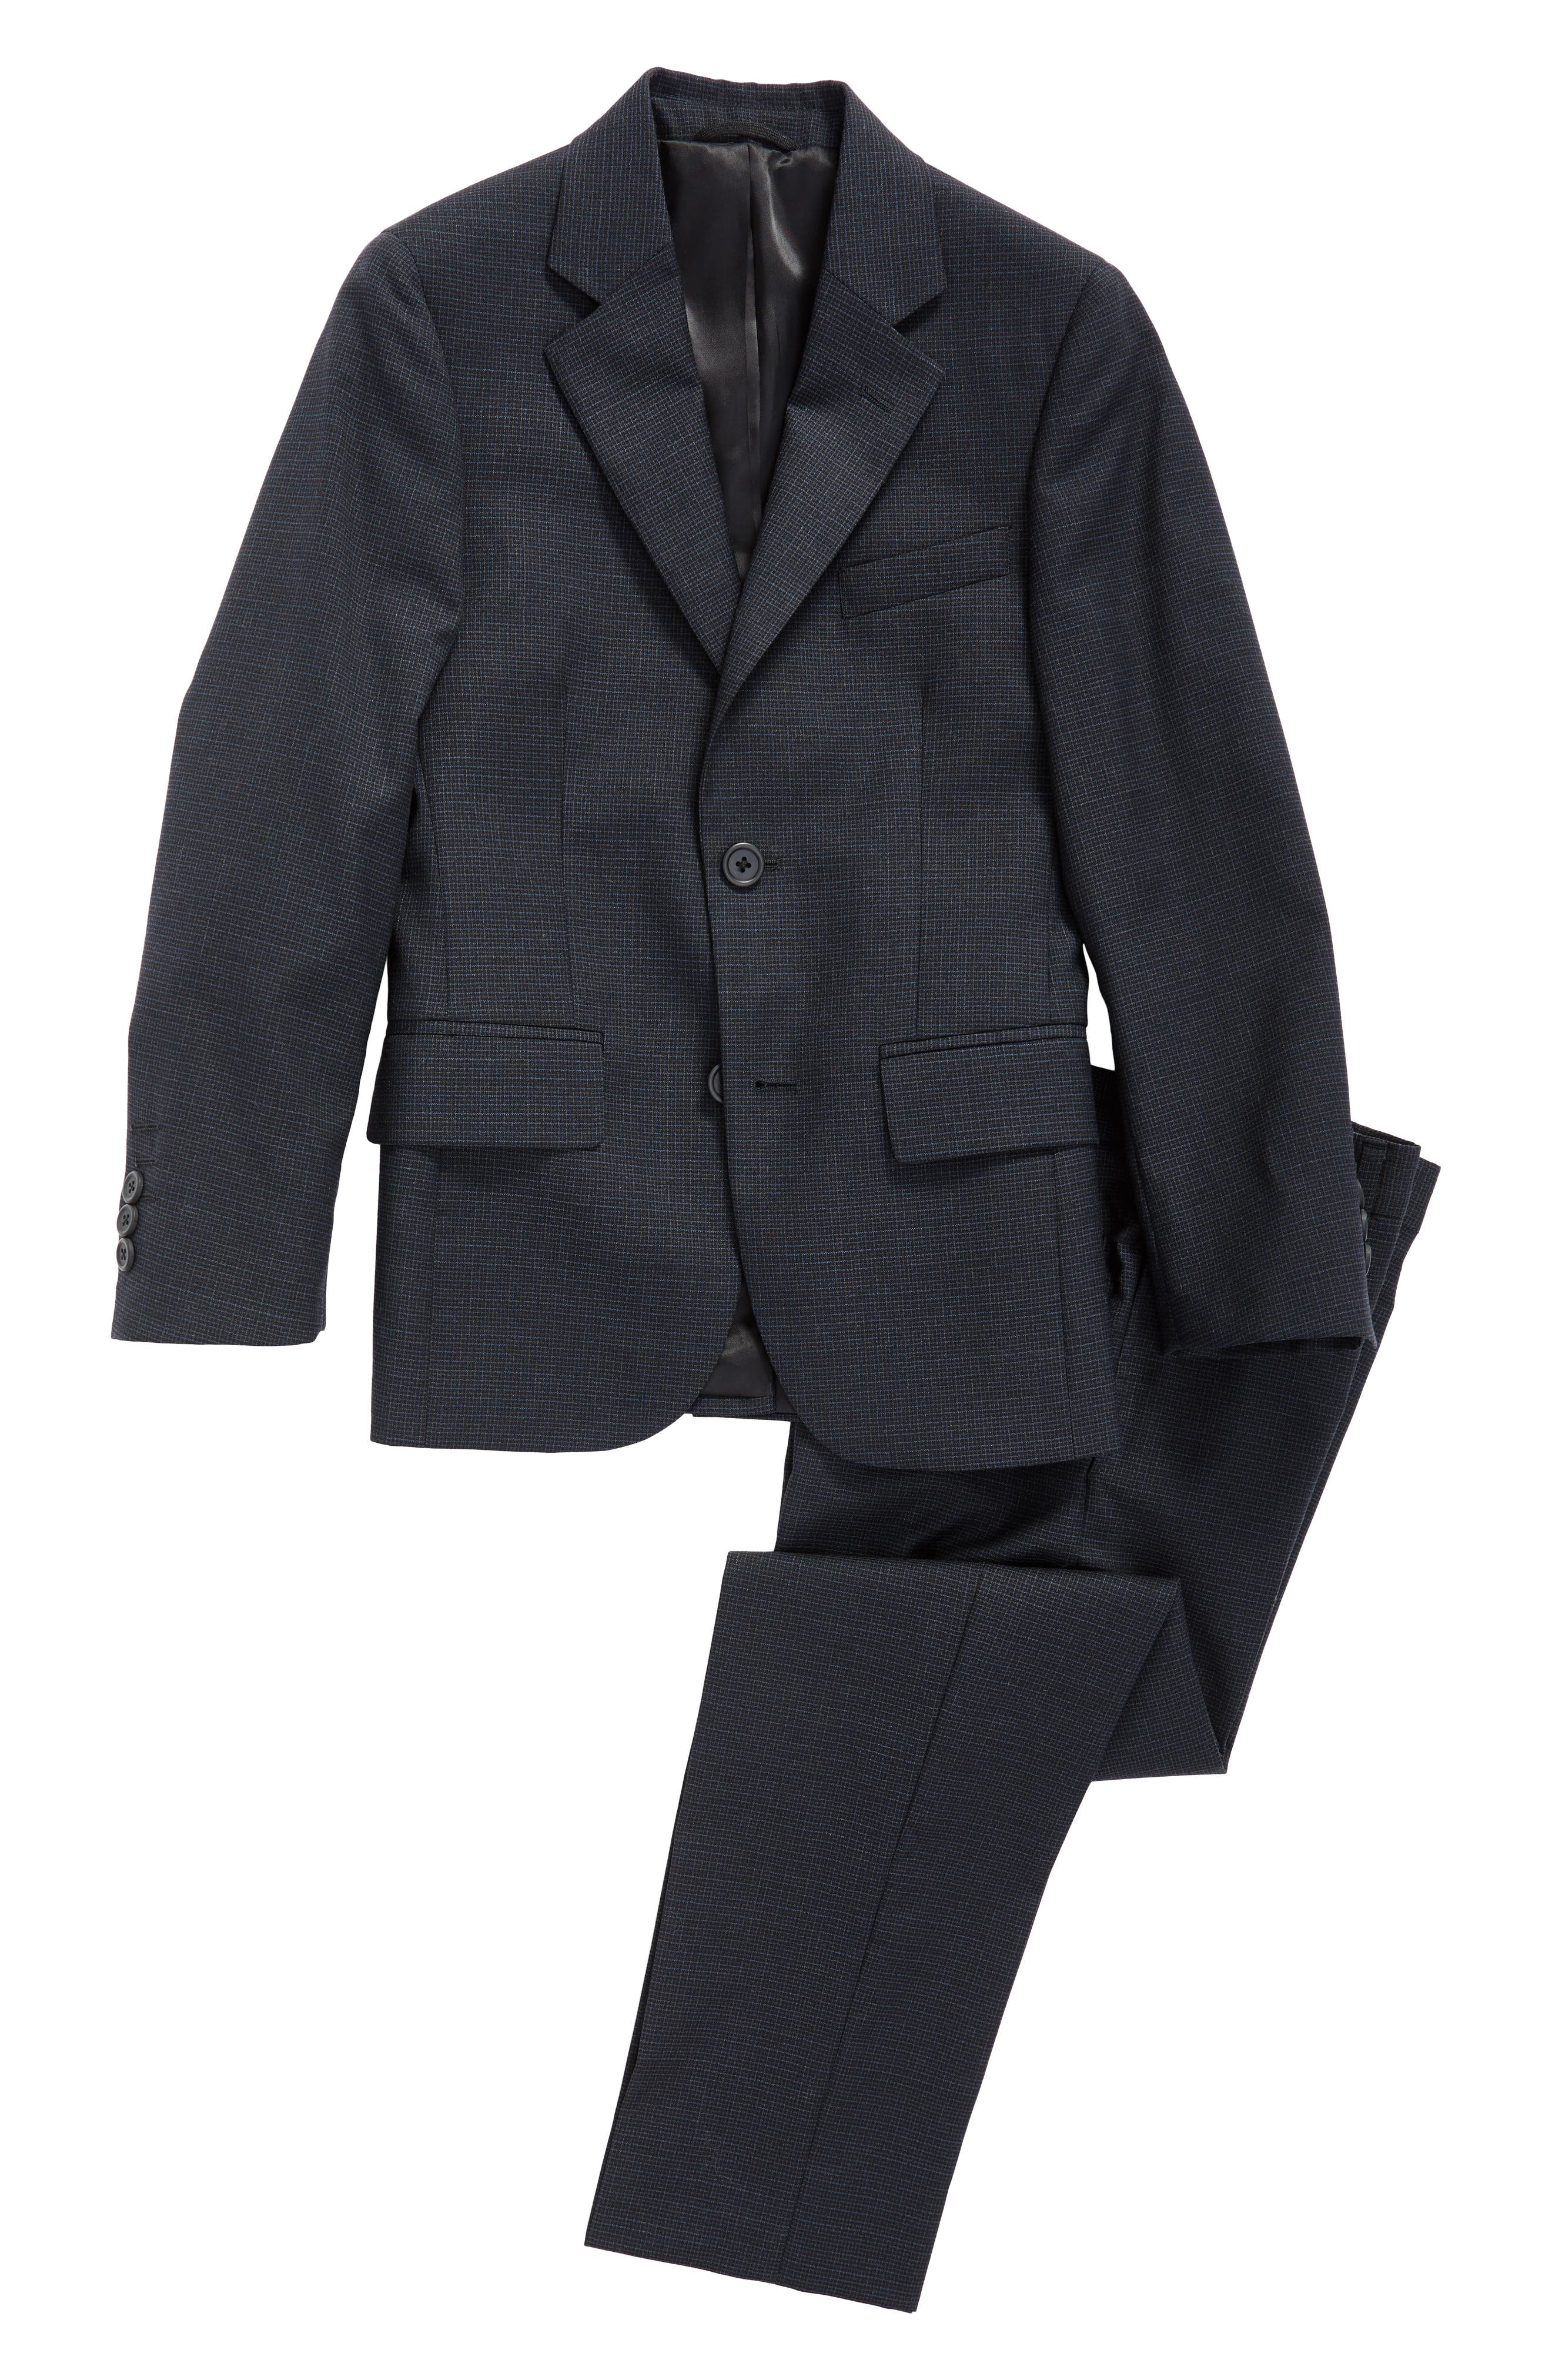 Micro Check Wool Suit,                             Main thumbnail 1, color,                             032